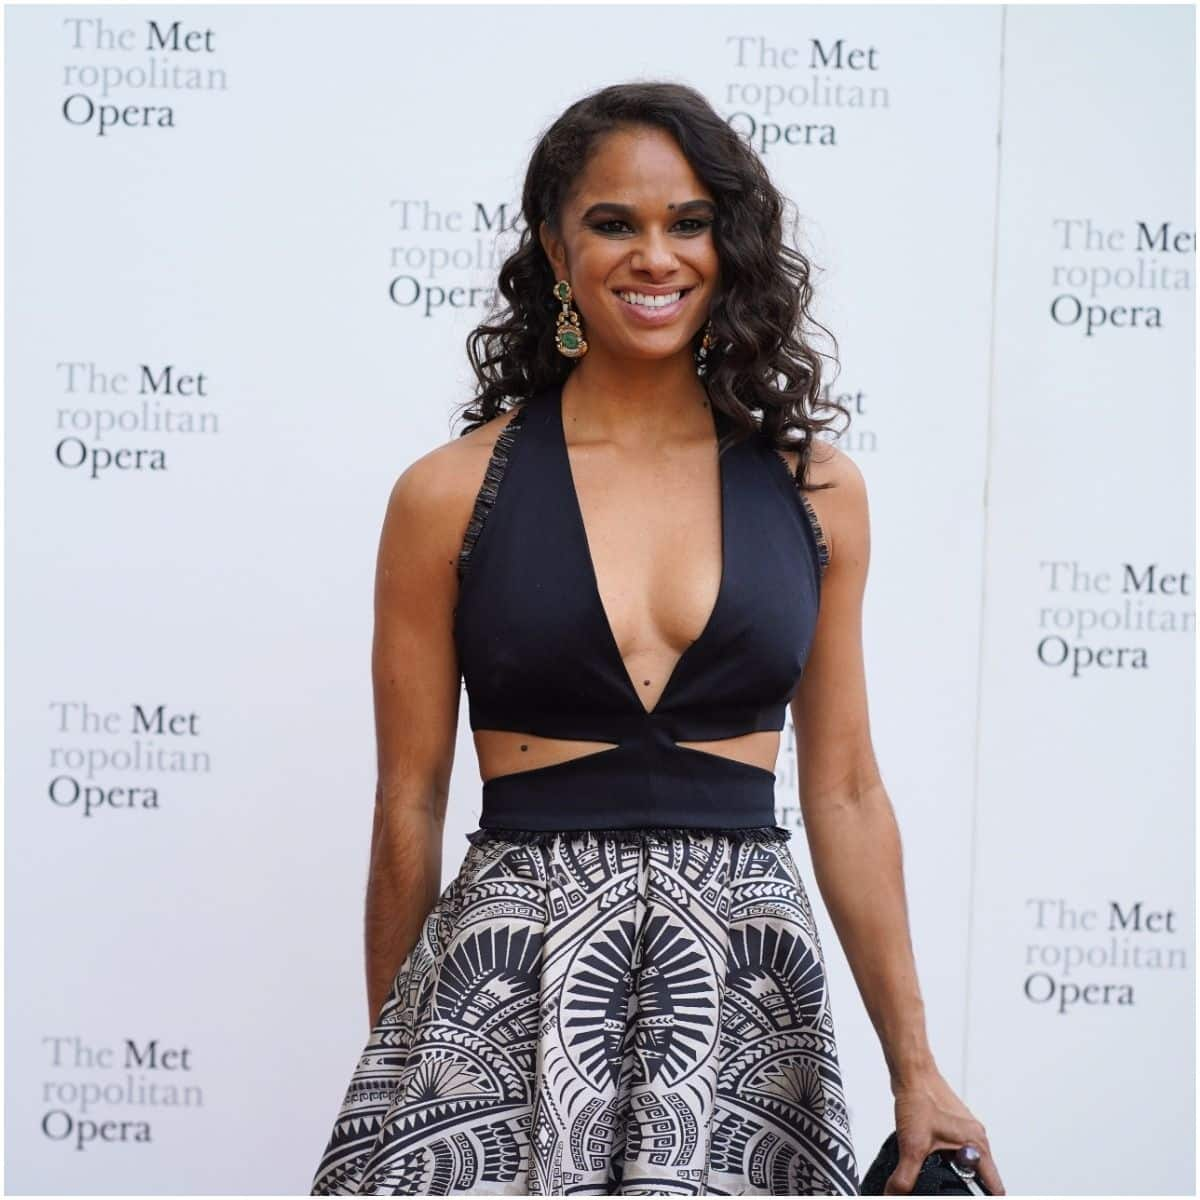 Misty Copeland net worth